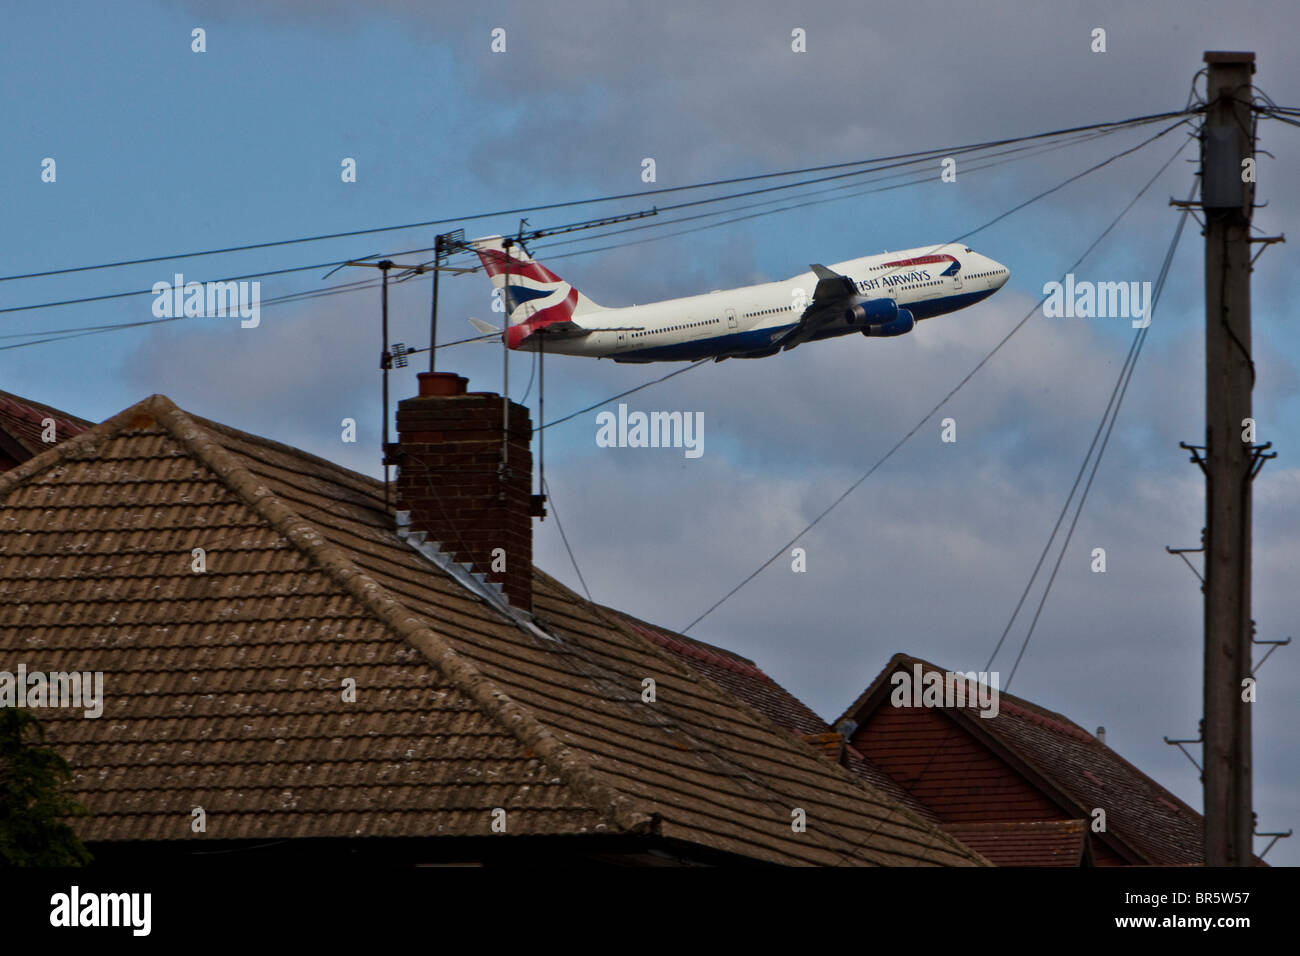 A plane taking off from London's Heathrow Airport, and flying over the Stanwell area of Hounslow Borough. - Stock Image